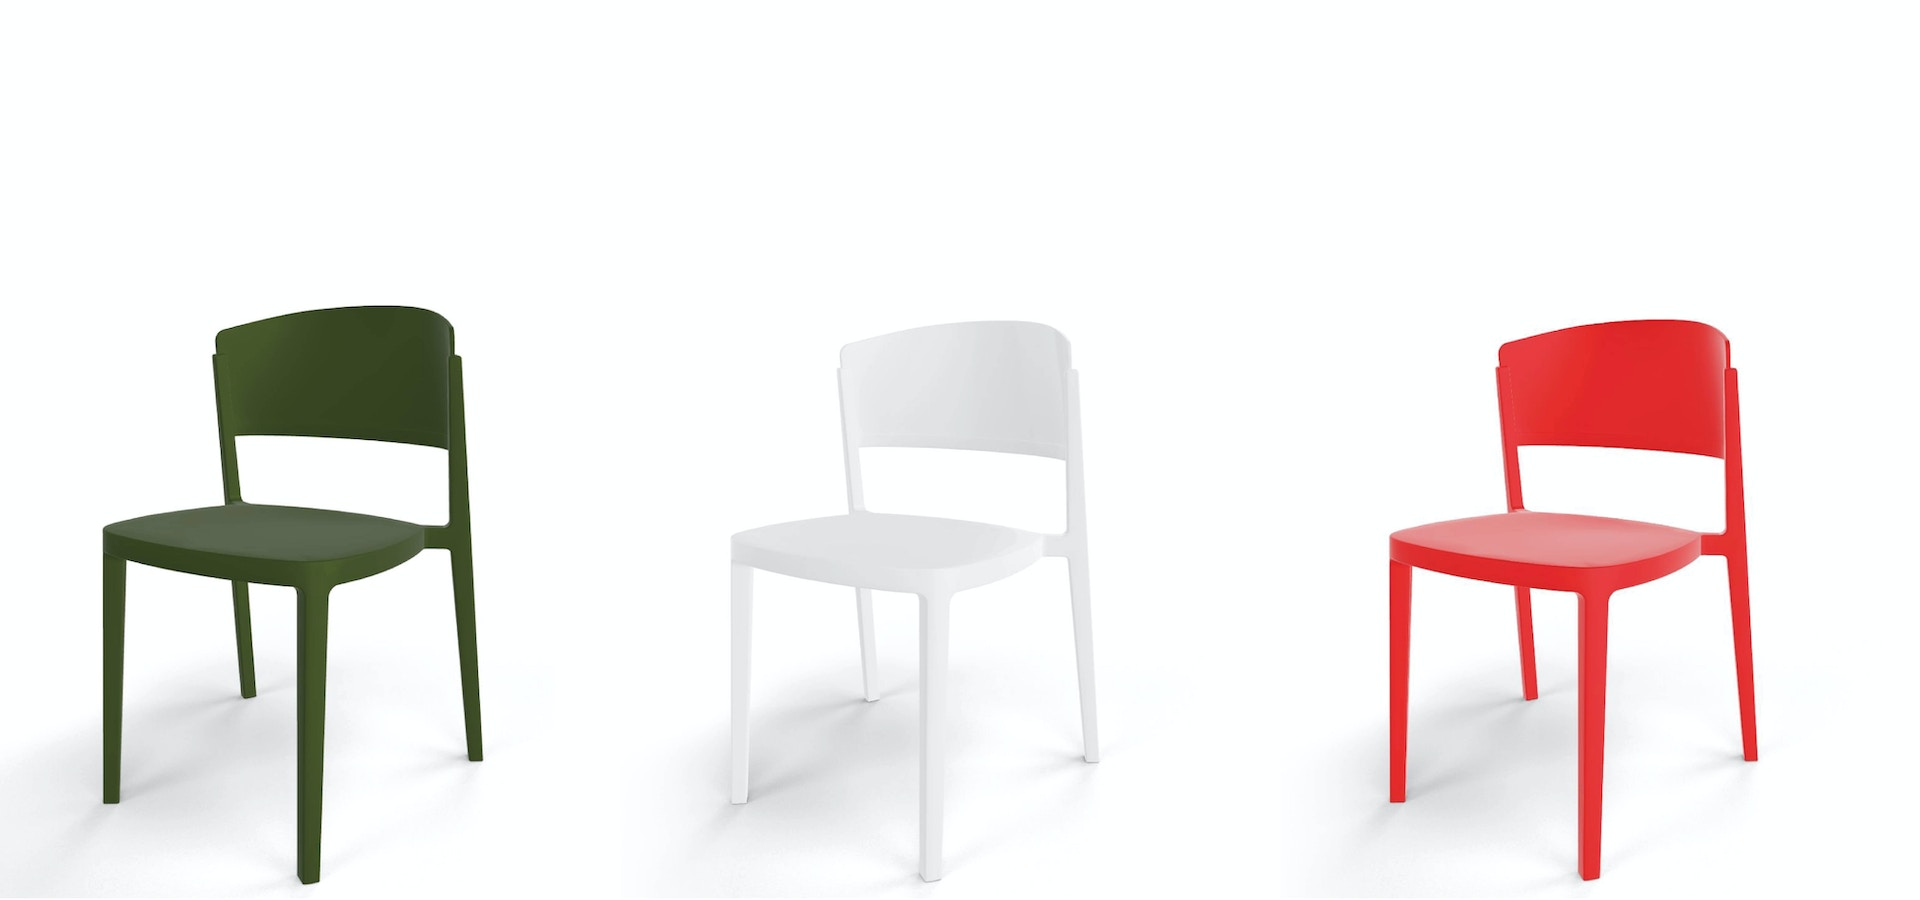 Chairs Stosa - Model Abuela 10040